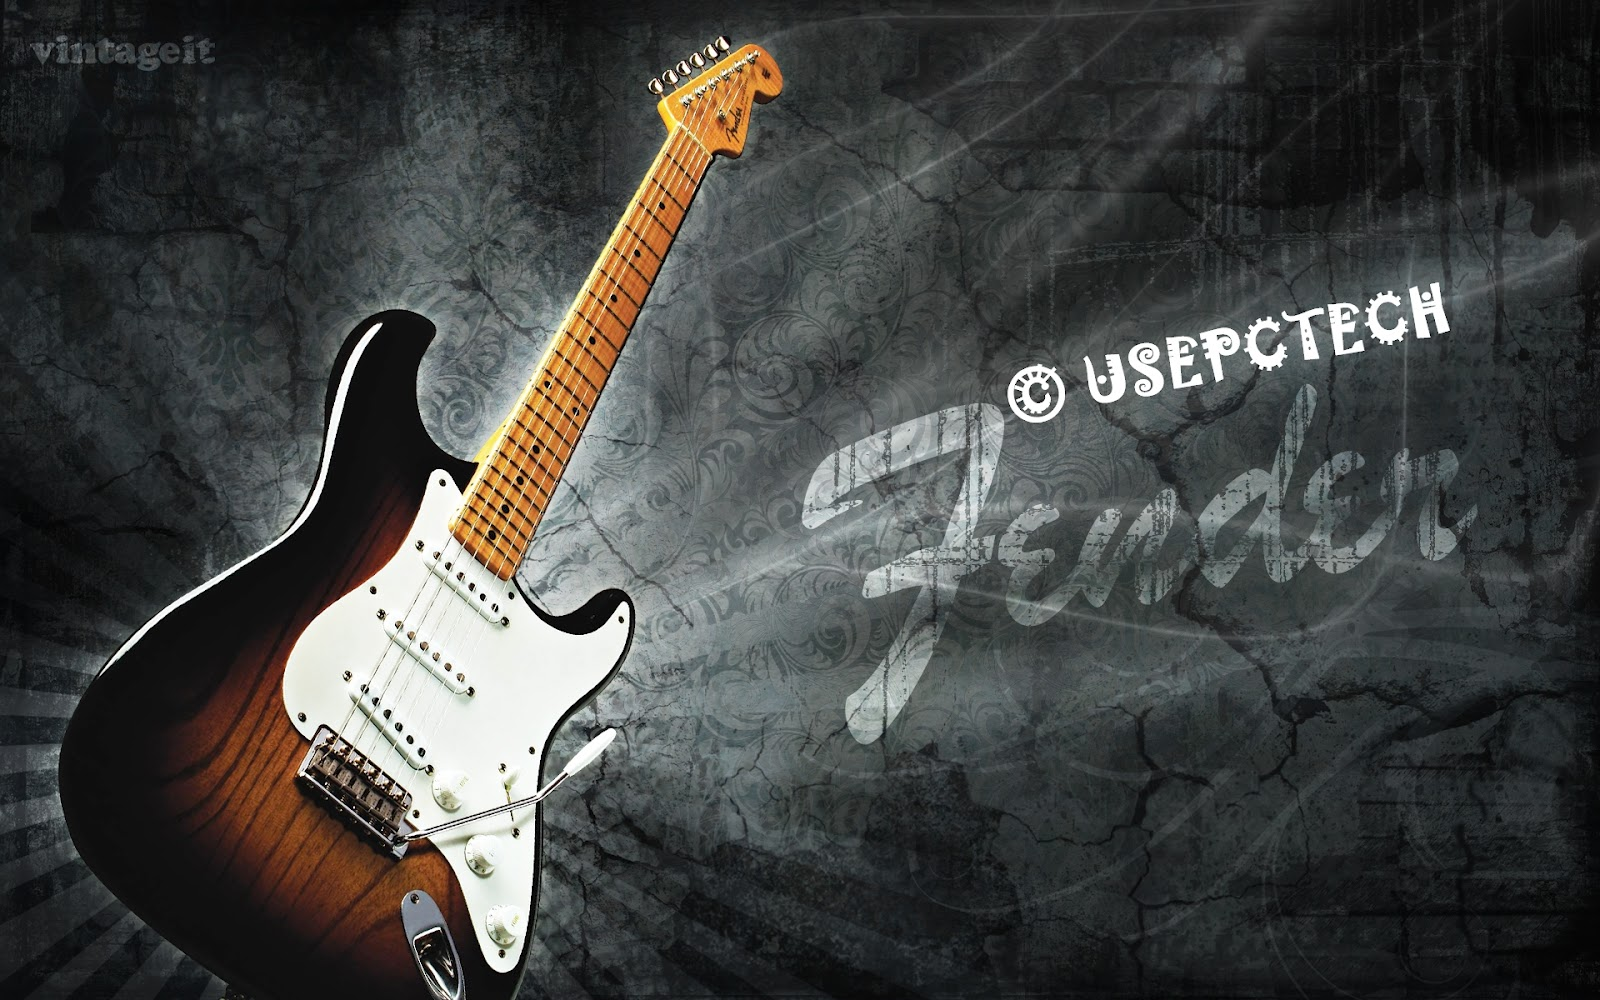 Guitar Wallpaper High Resolution - WallpaperSafari